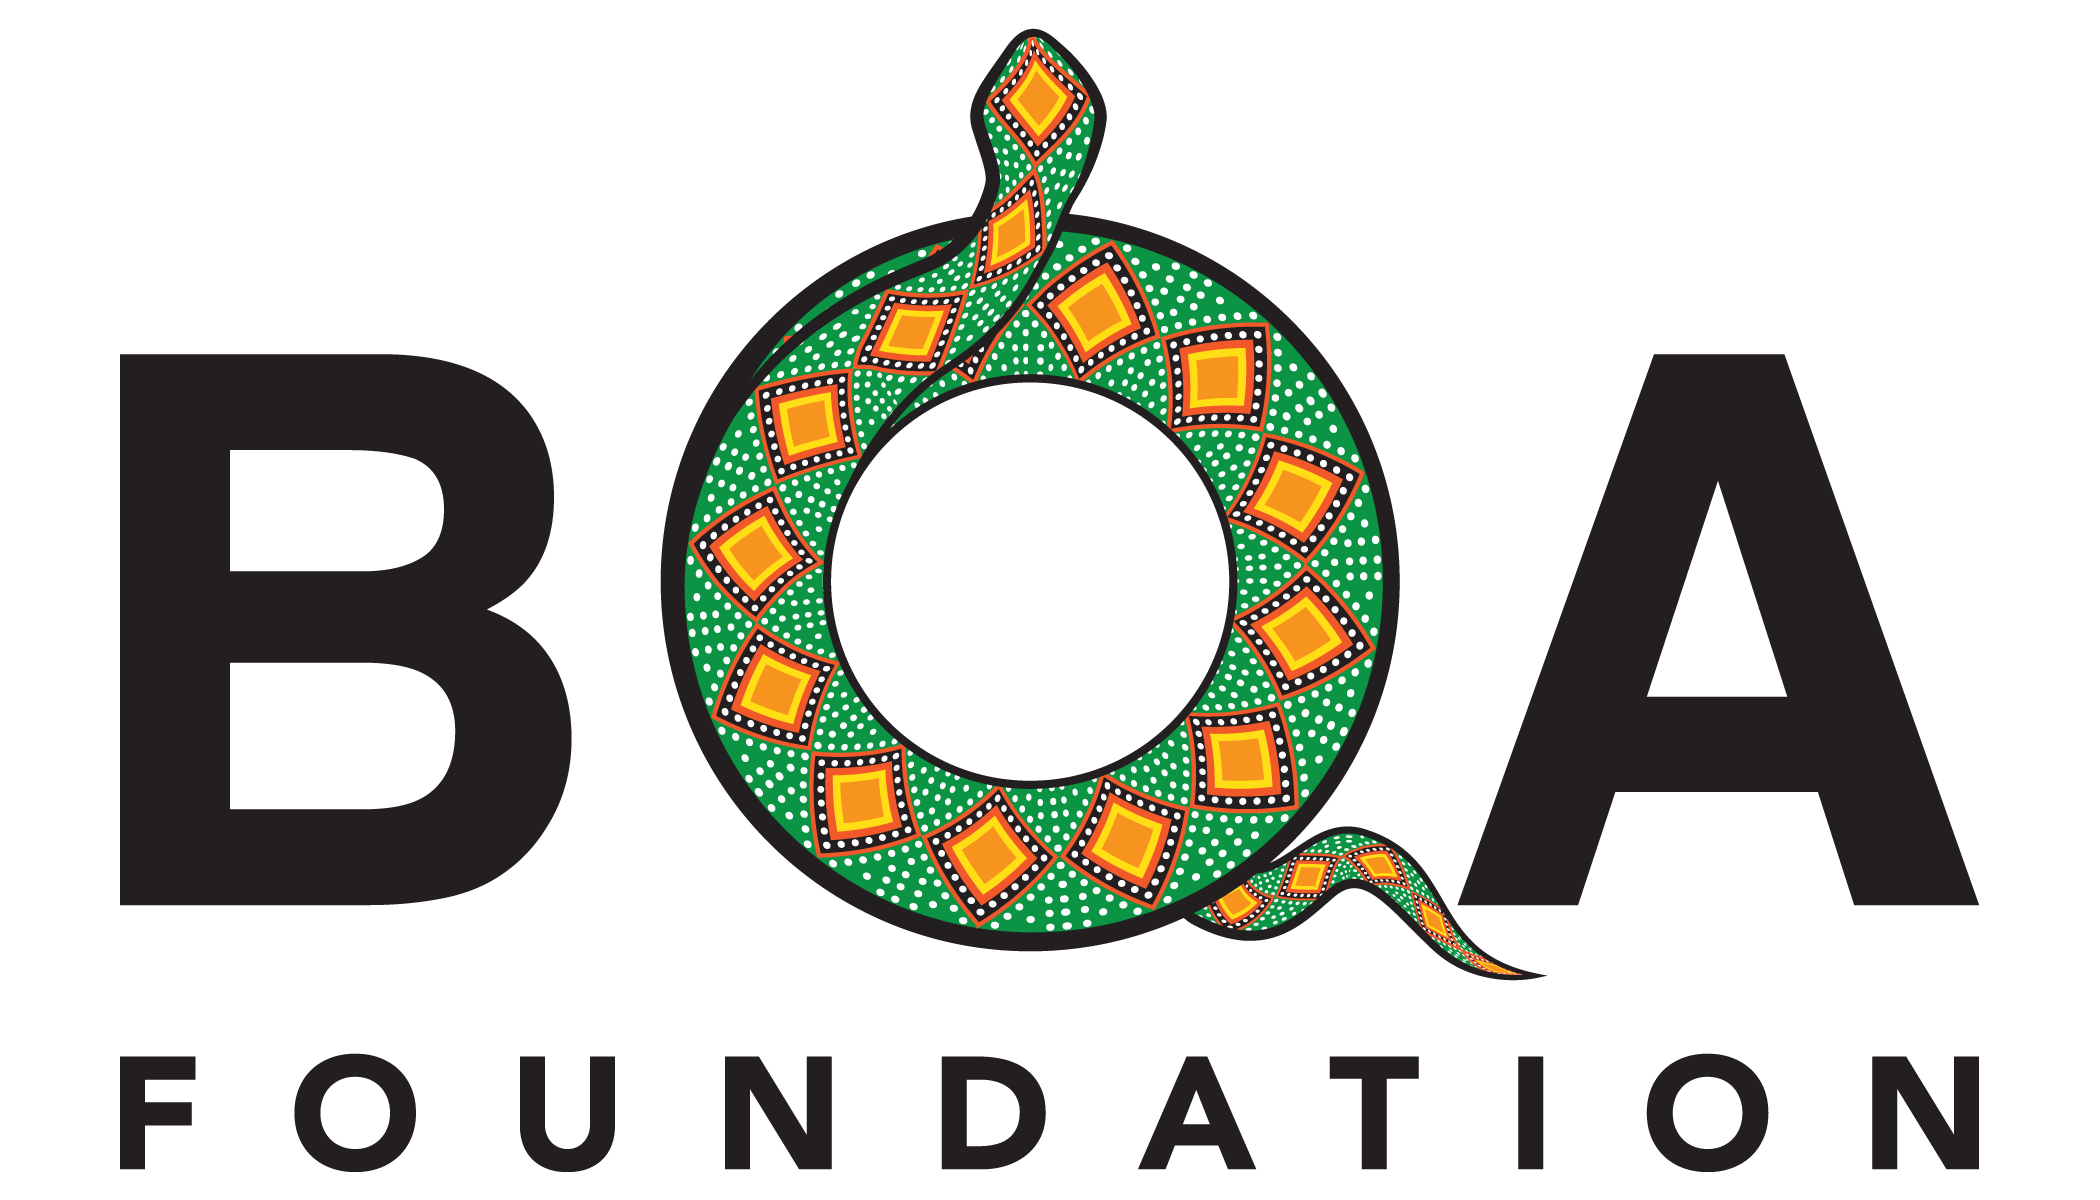 The Boa Foundation is a nonprofit organization that works in alliance with indigenous communities to preserve and protect sacred land, culture and ancient wisdom.We focus on indigenous-lead projects including strategic land buy backs, restoration of native ecosystems, reforestation, cultural exchange and sustainable living solutions. - All donations are tax deductible